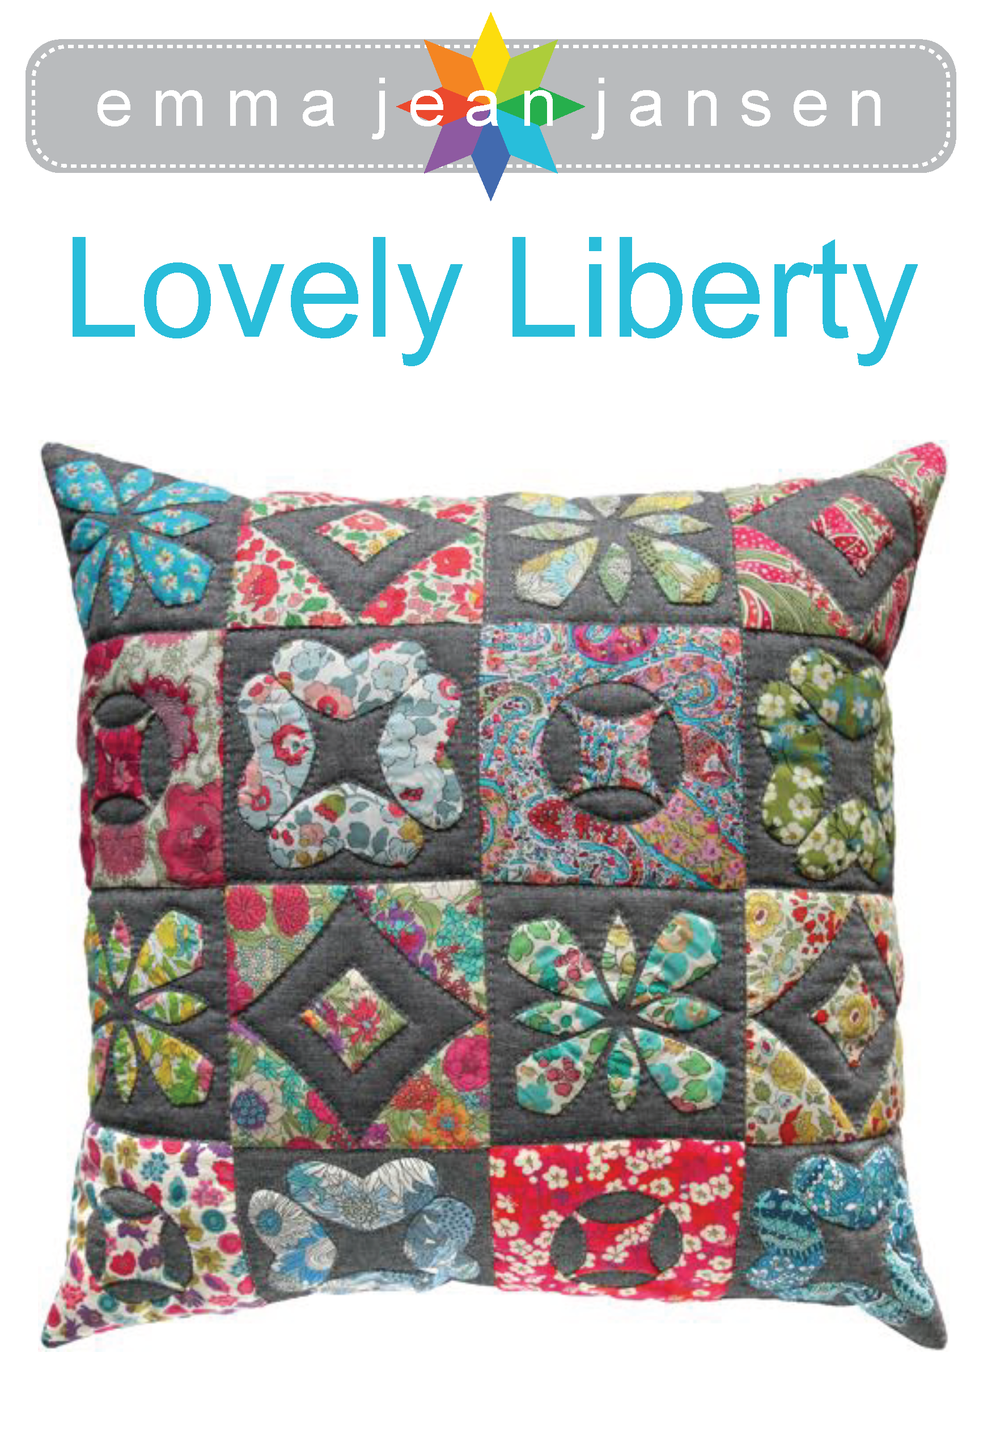 LovelyLibertyCushion.png